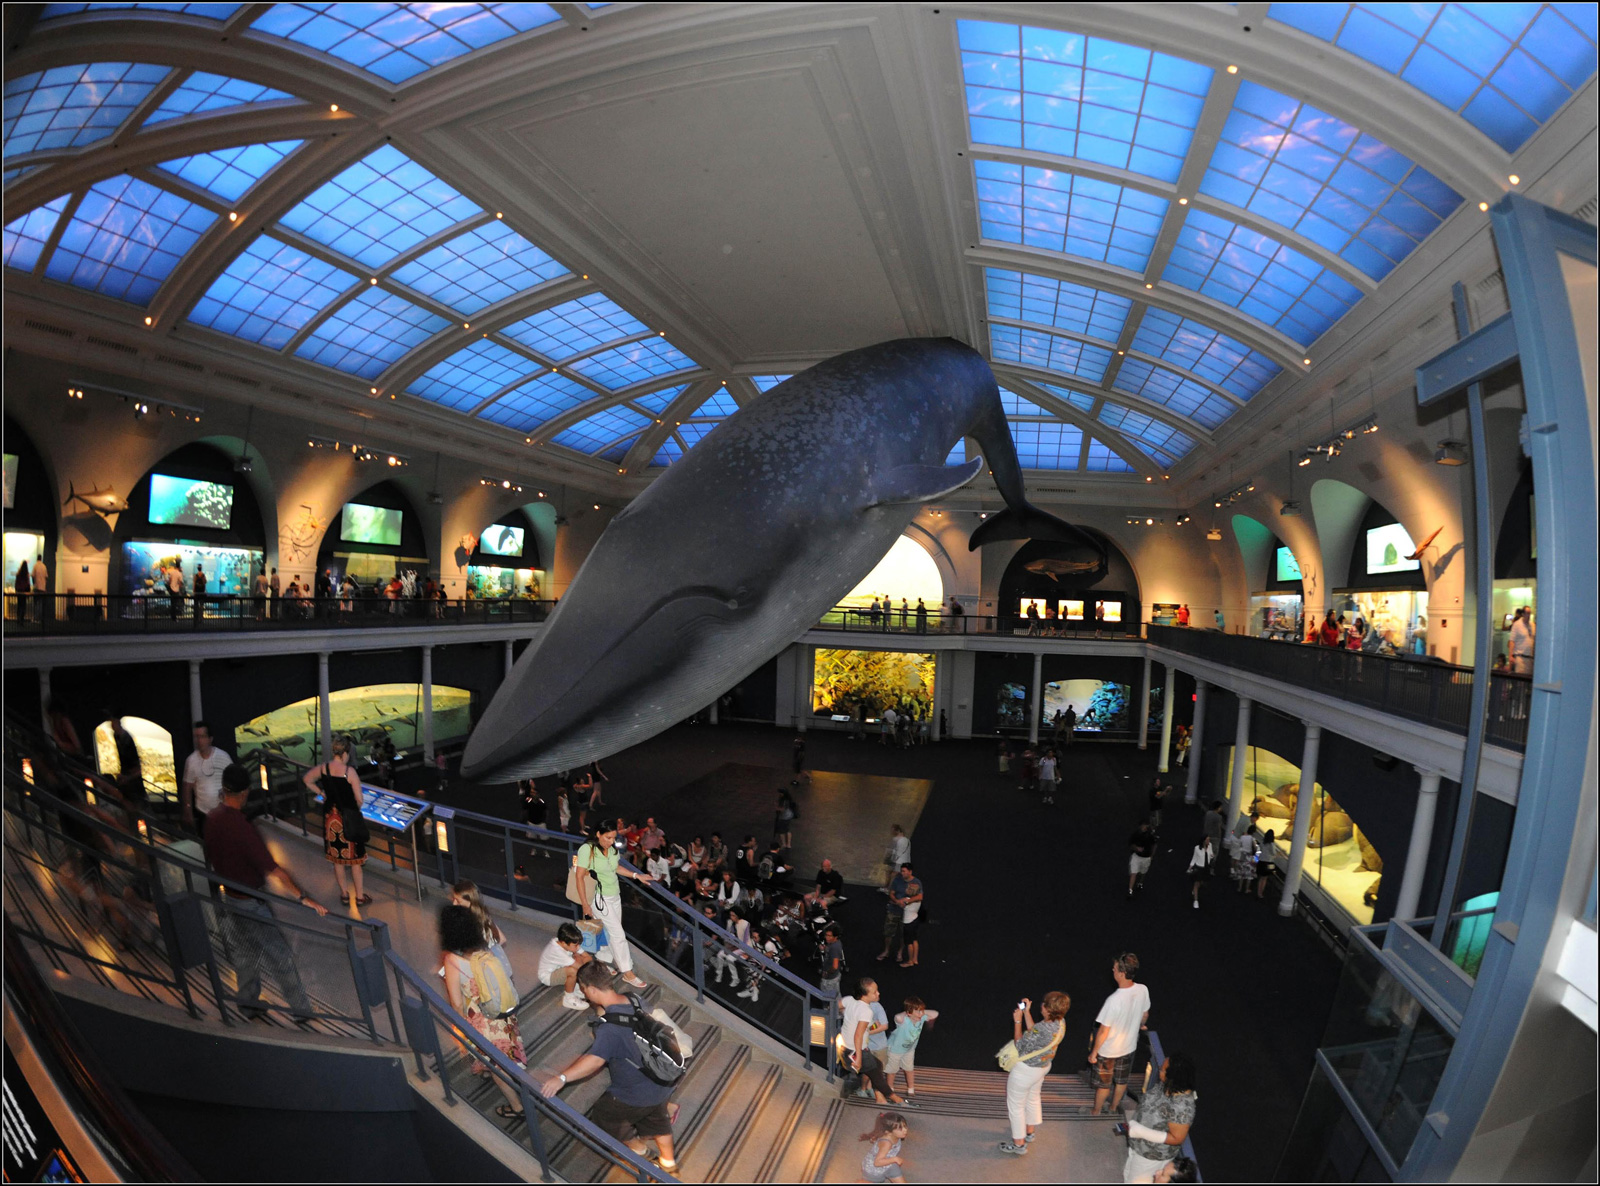 nyc-american-museum-natural-history-whale